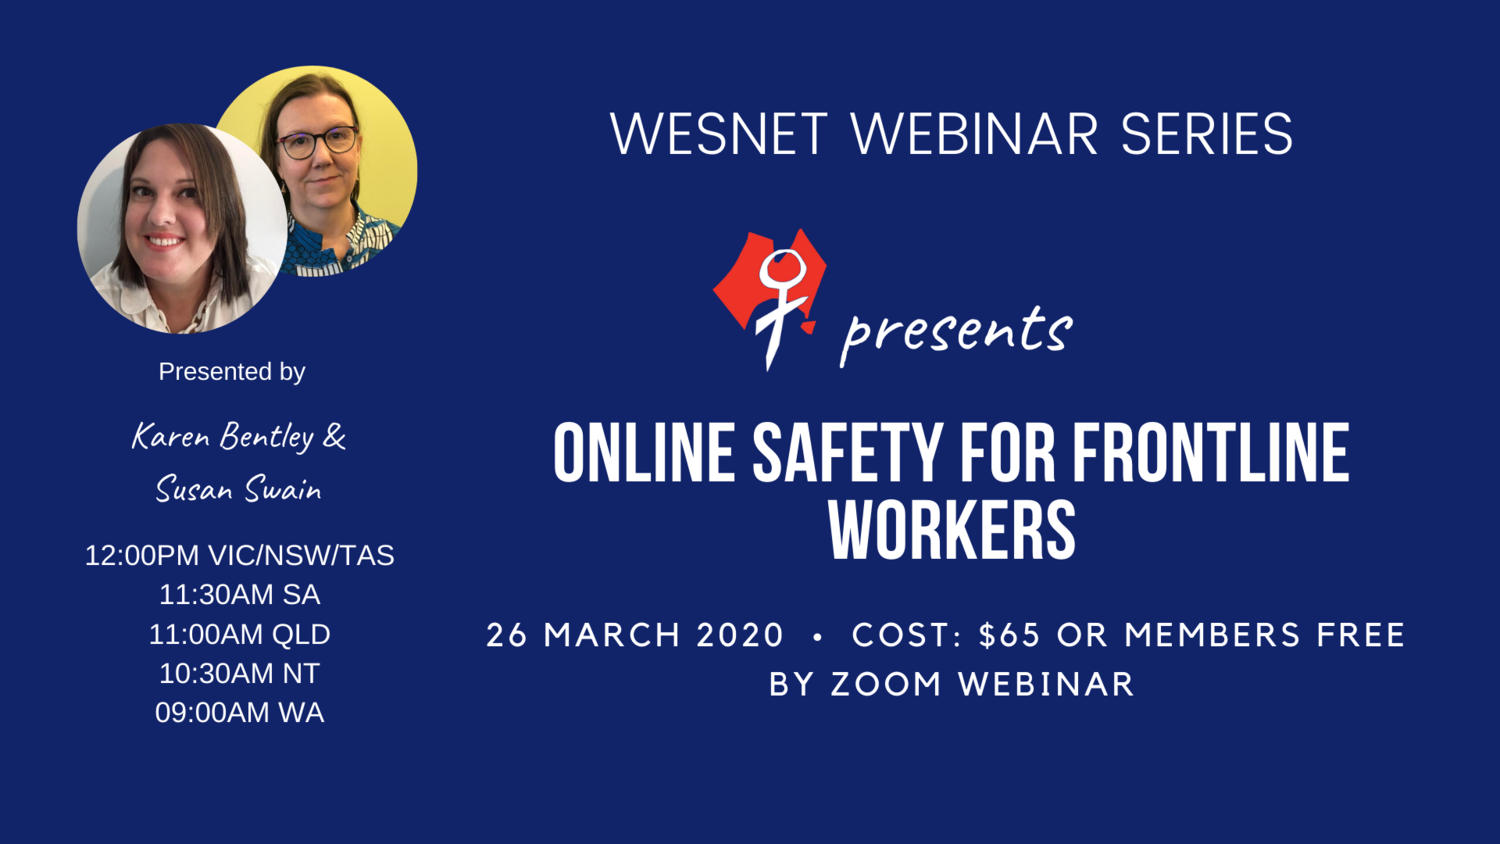 WESNET Webinar Series presents: Online Safety For Frontline Workers - 26th March 2020 / POSTPONED